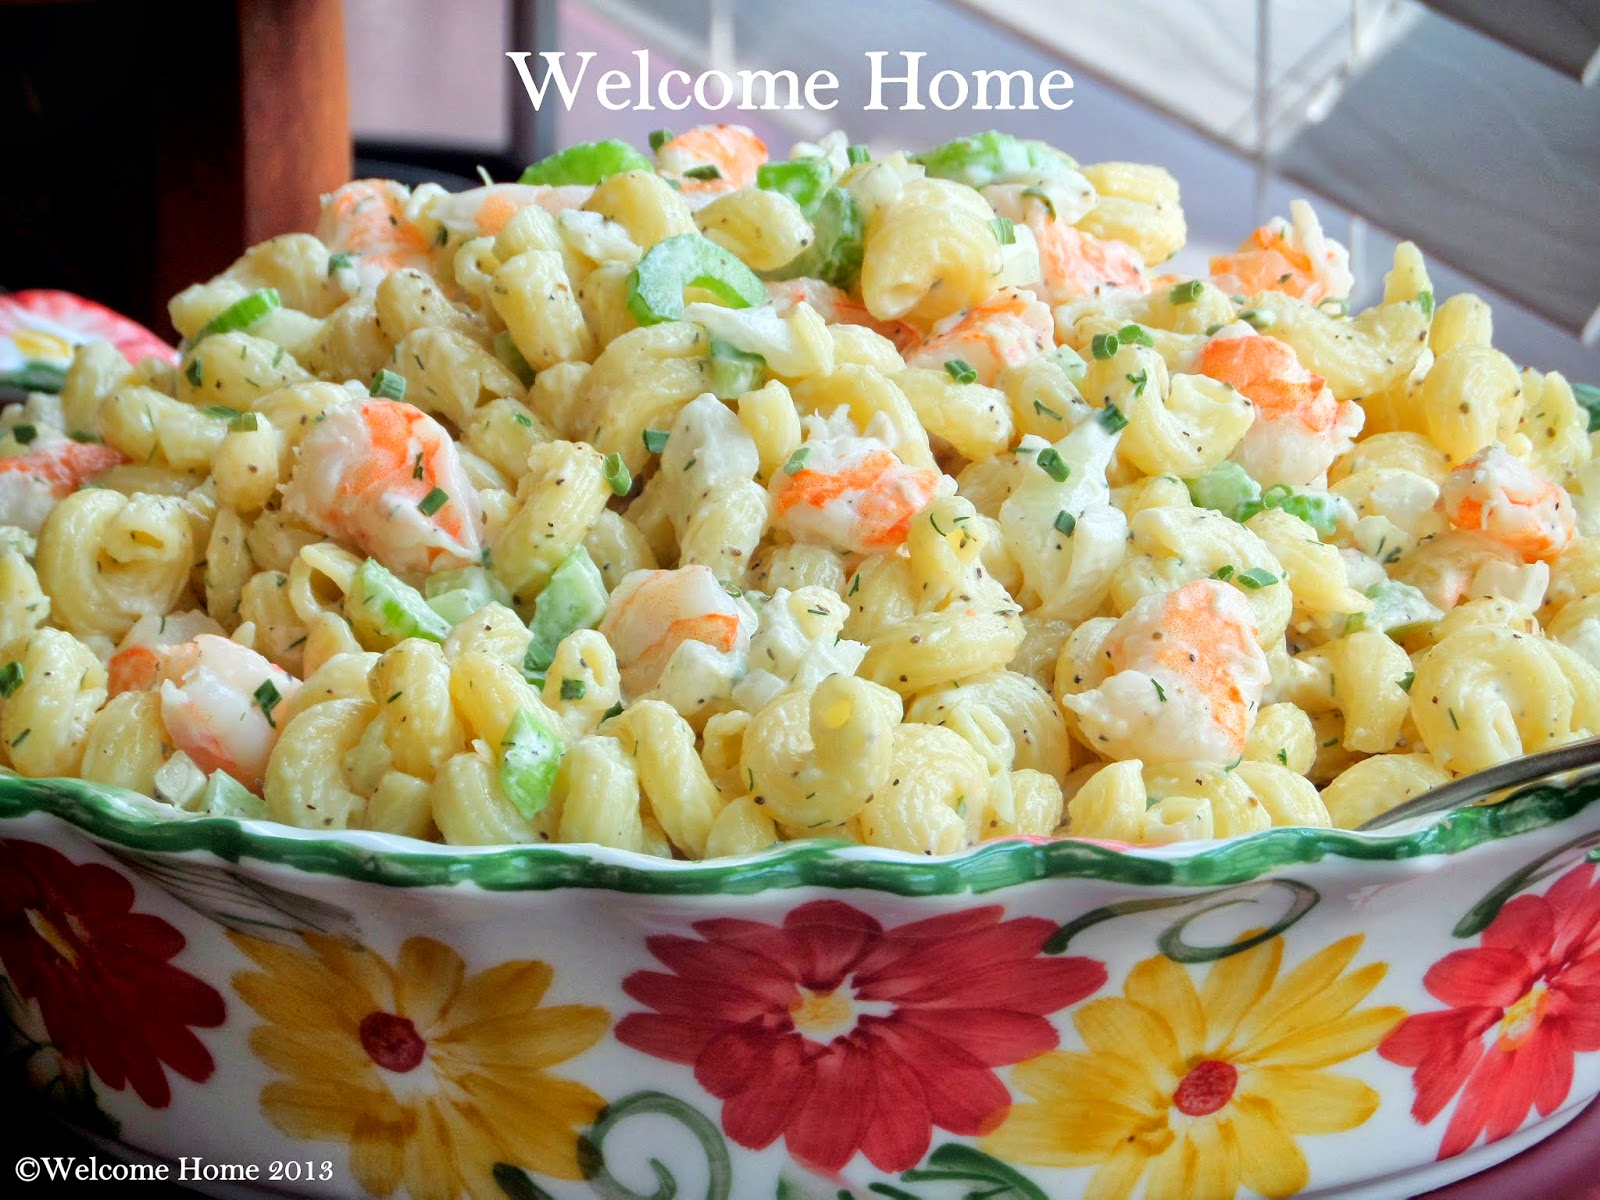 Welcome Home Macaroni Shrimp Salad | Pasta Salad... | Pinterest